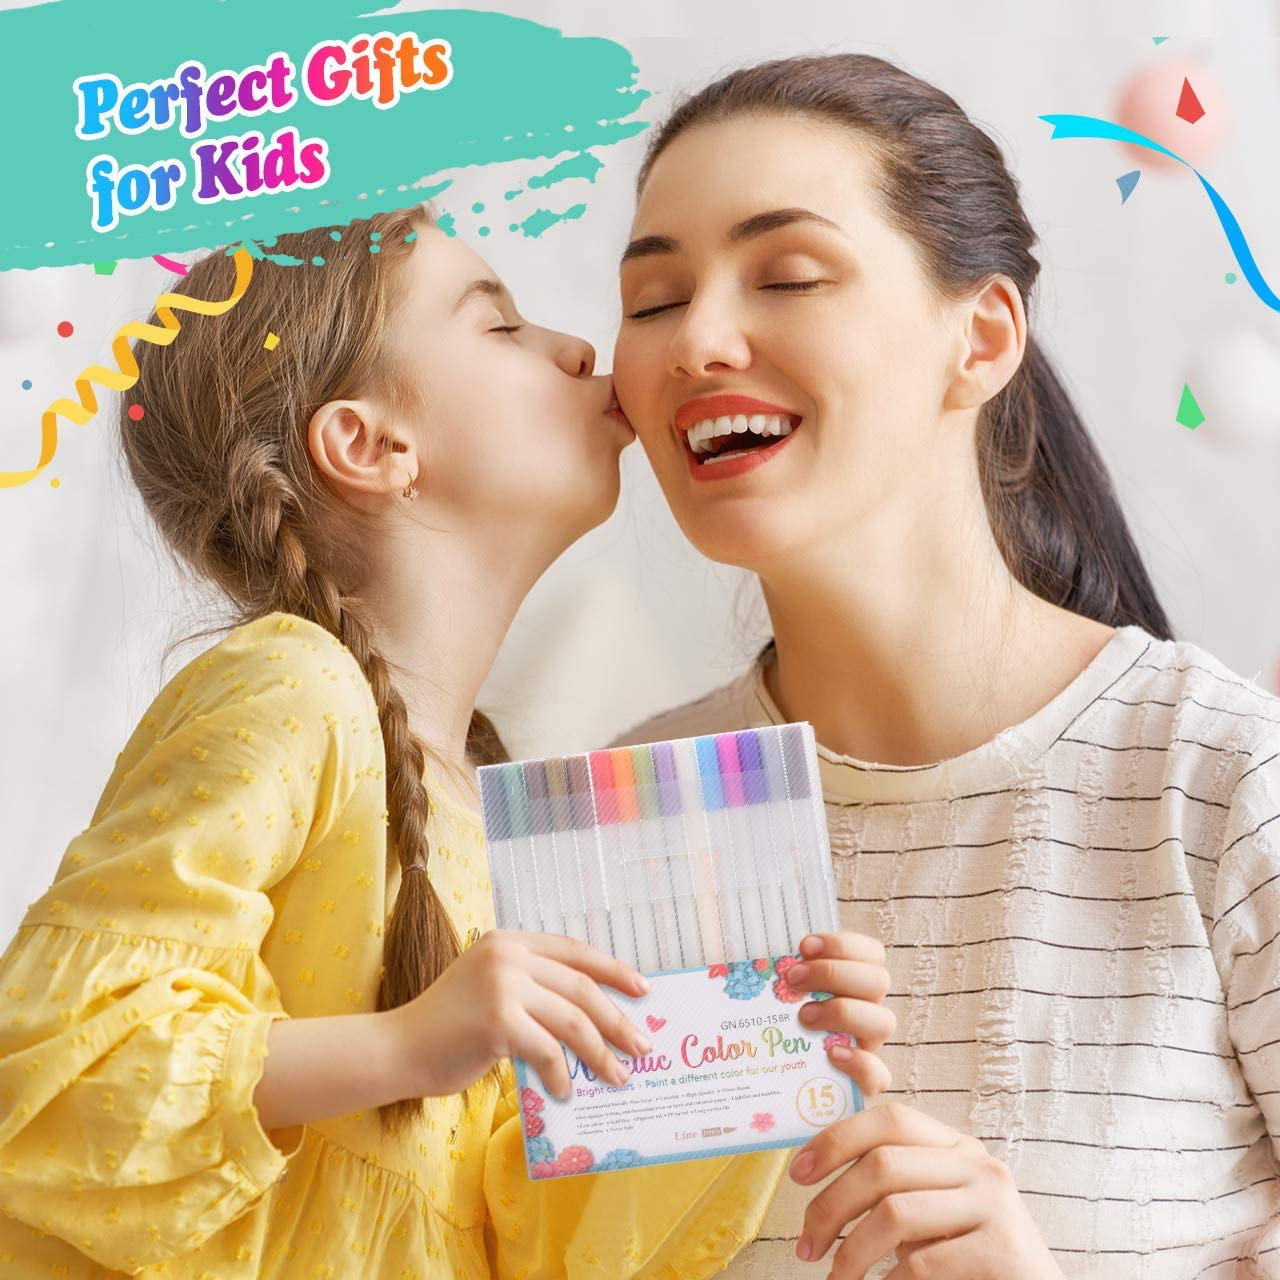 Tesoky Paint Pens Art Supplies for Kids Age 3-12 Paint Makers for Rock Glass Wooden Paper Painting Toys for 3-12 Year Old Kids Boys Girls Best Gifts for 3-12 Year Old Boys Girls